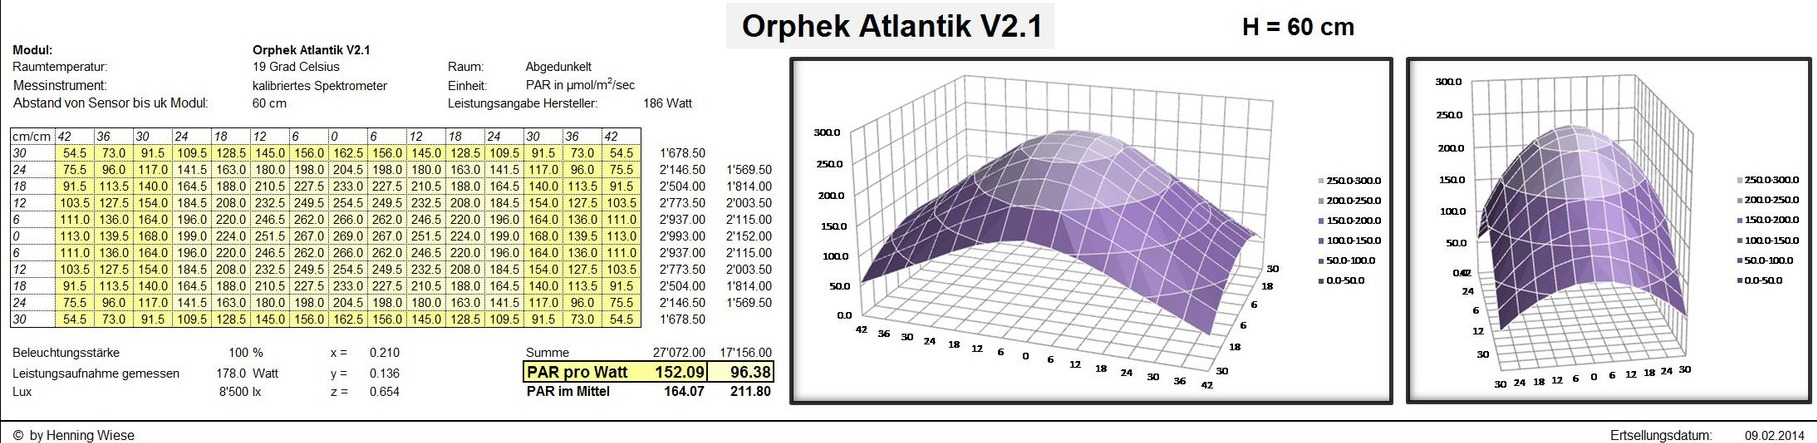 Orphek Atlantik V2.1 LED valaisin-PAR MAP-PAR per Watt